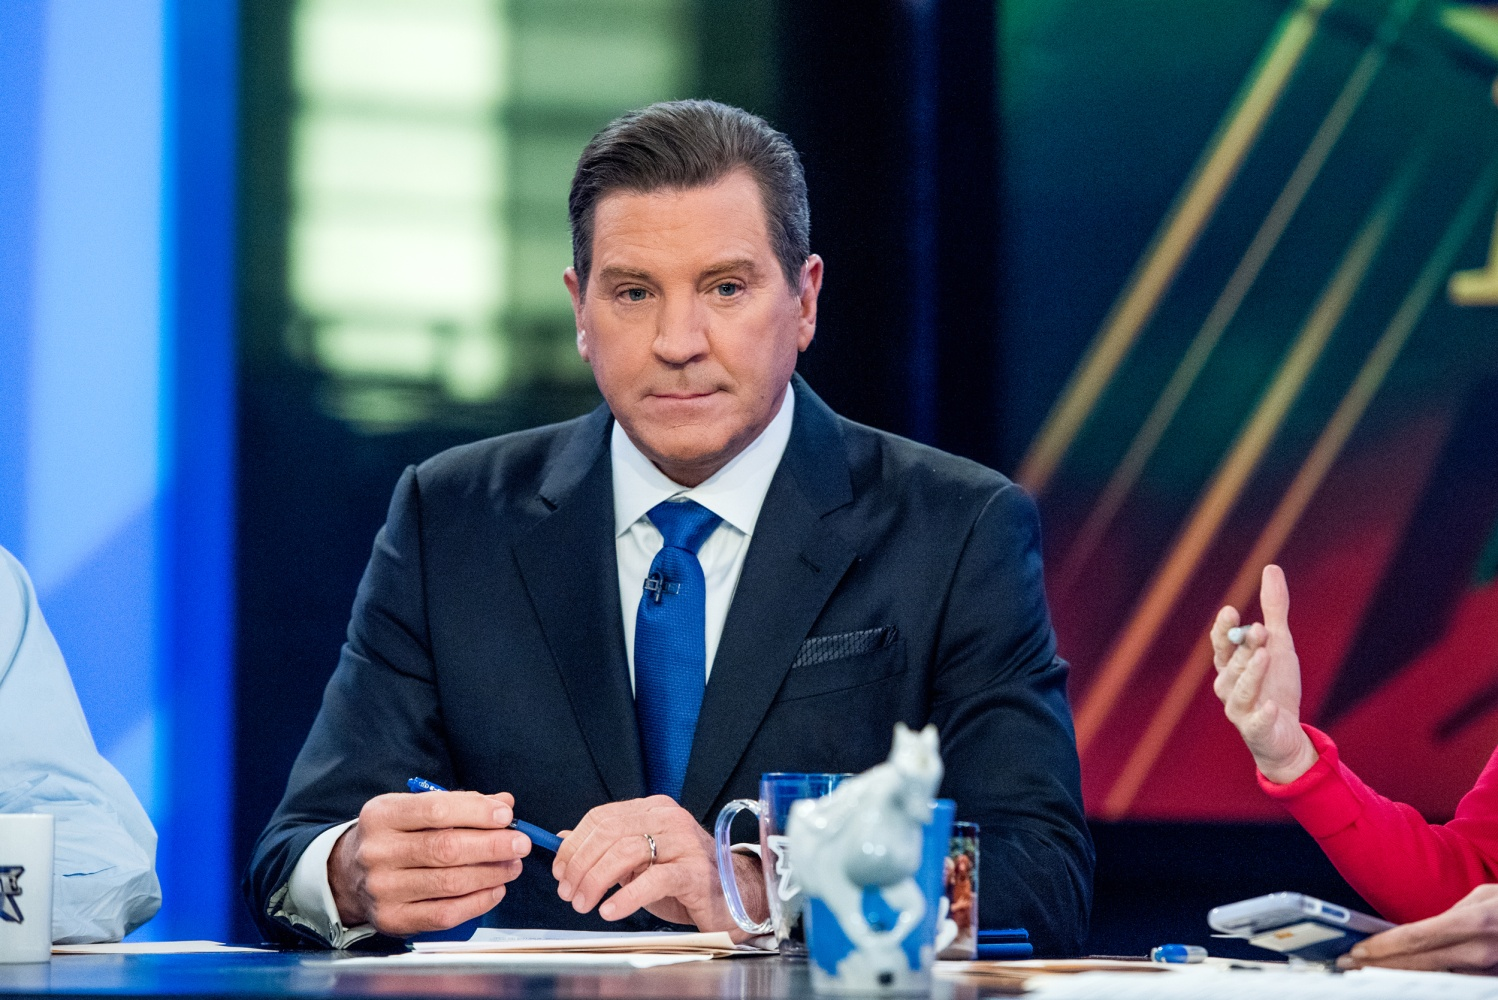 Fox News star, NJ resident Eric Bolling responds to sex harassment charges